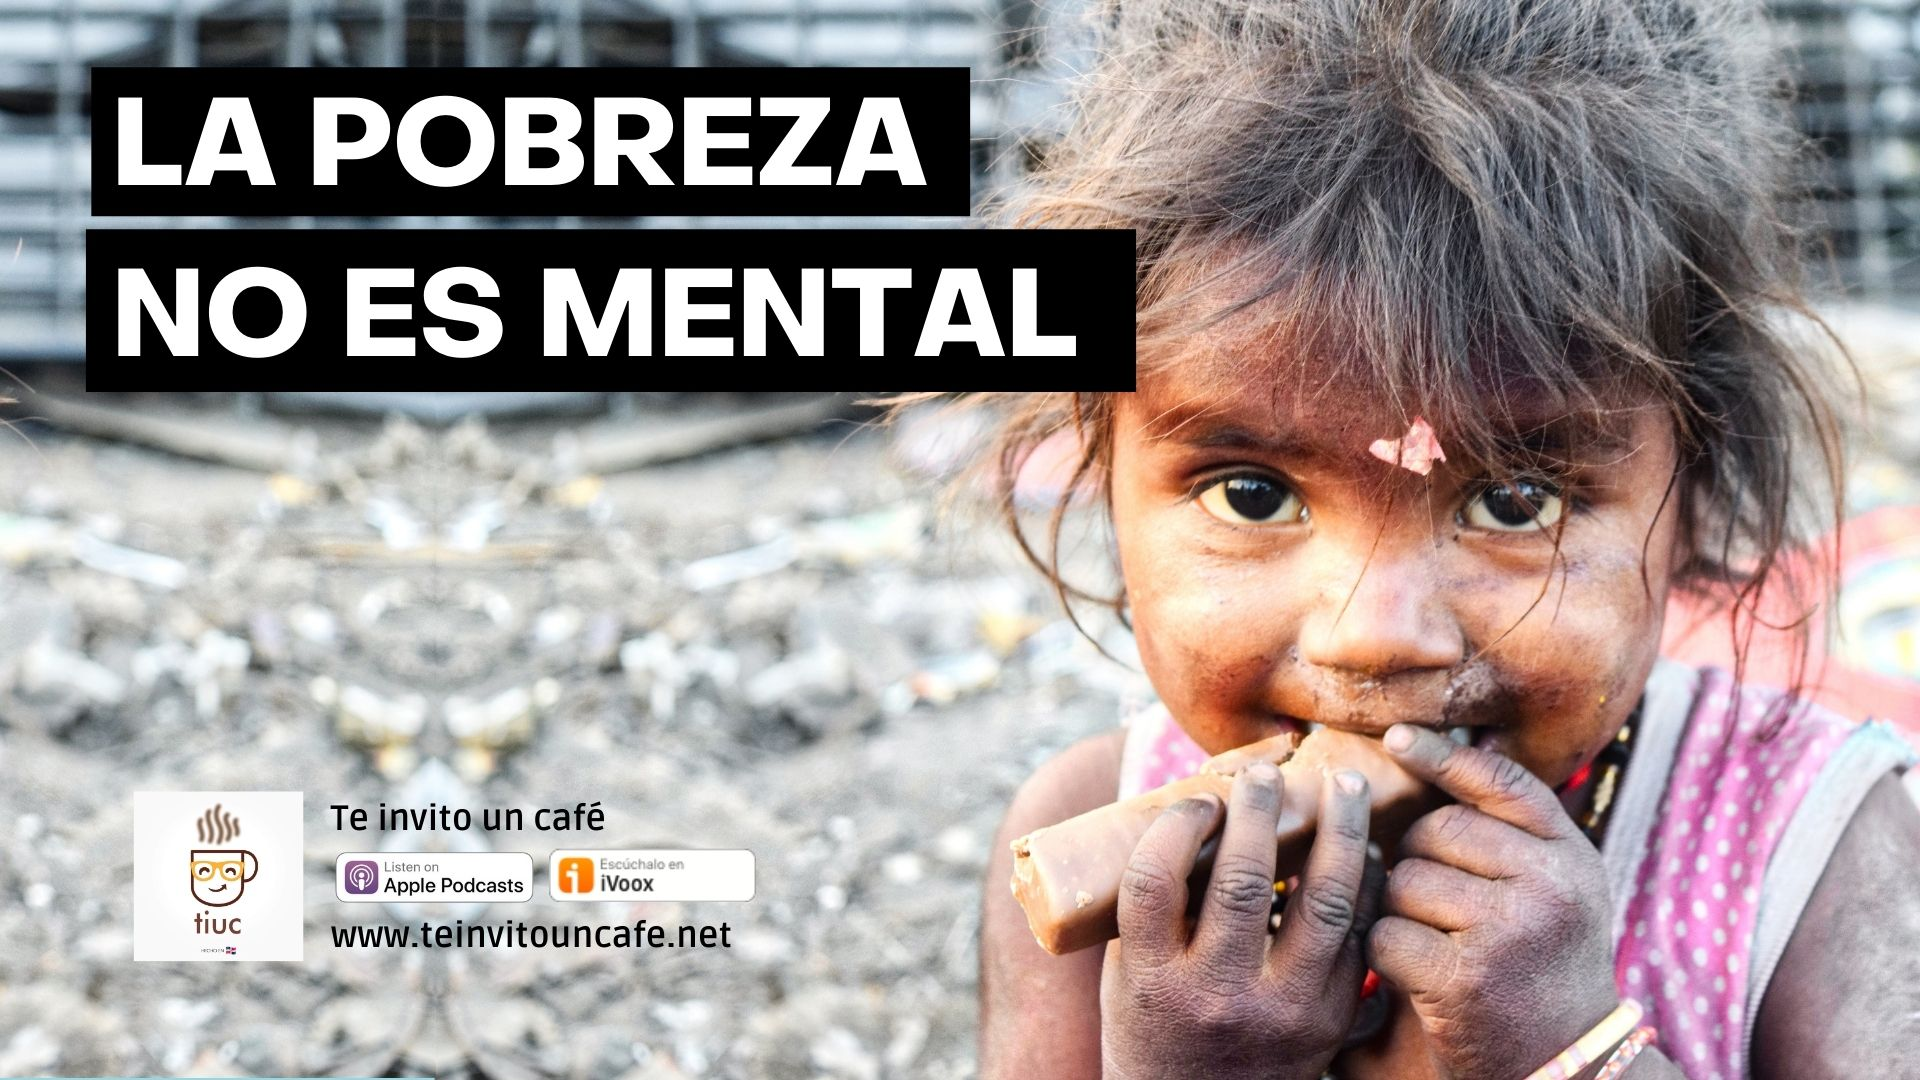 No, la pobreza no es un estado mental